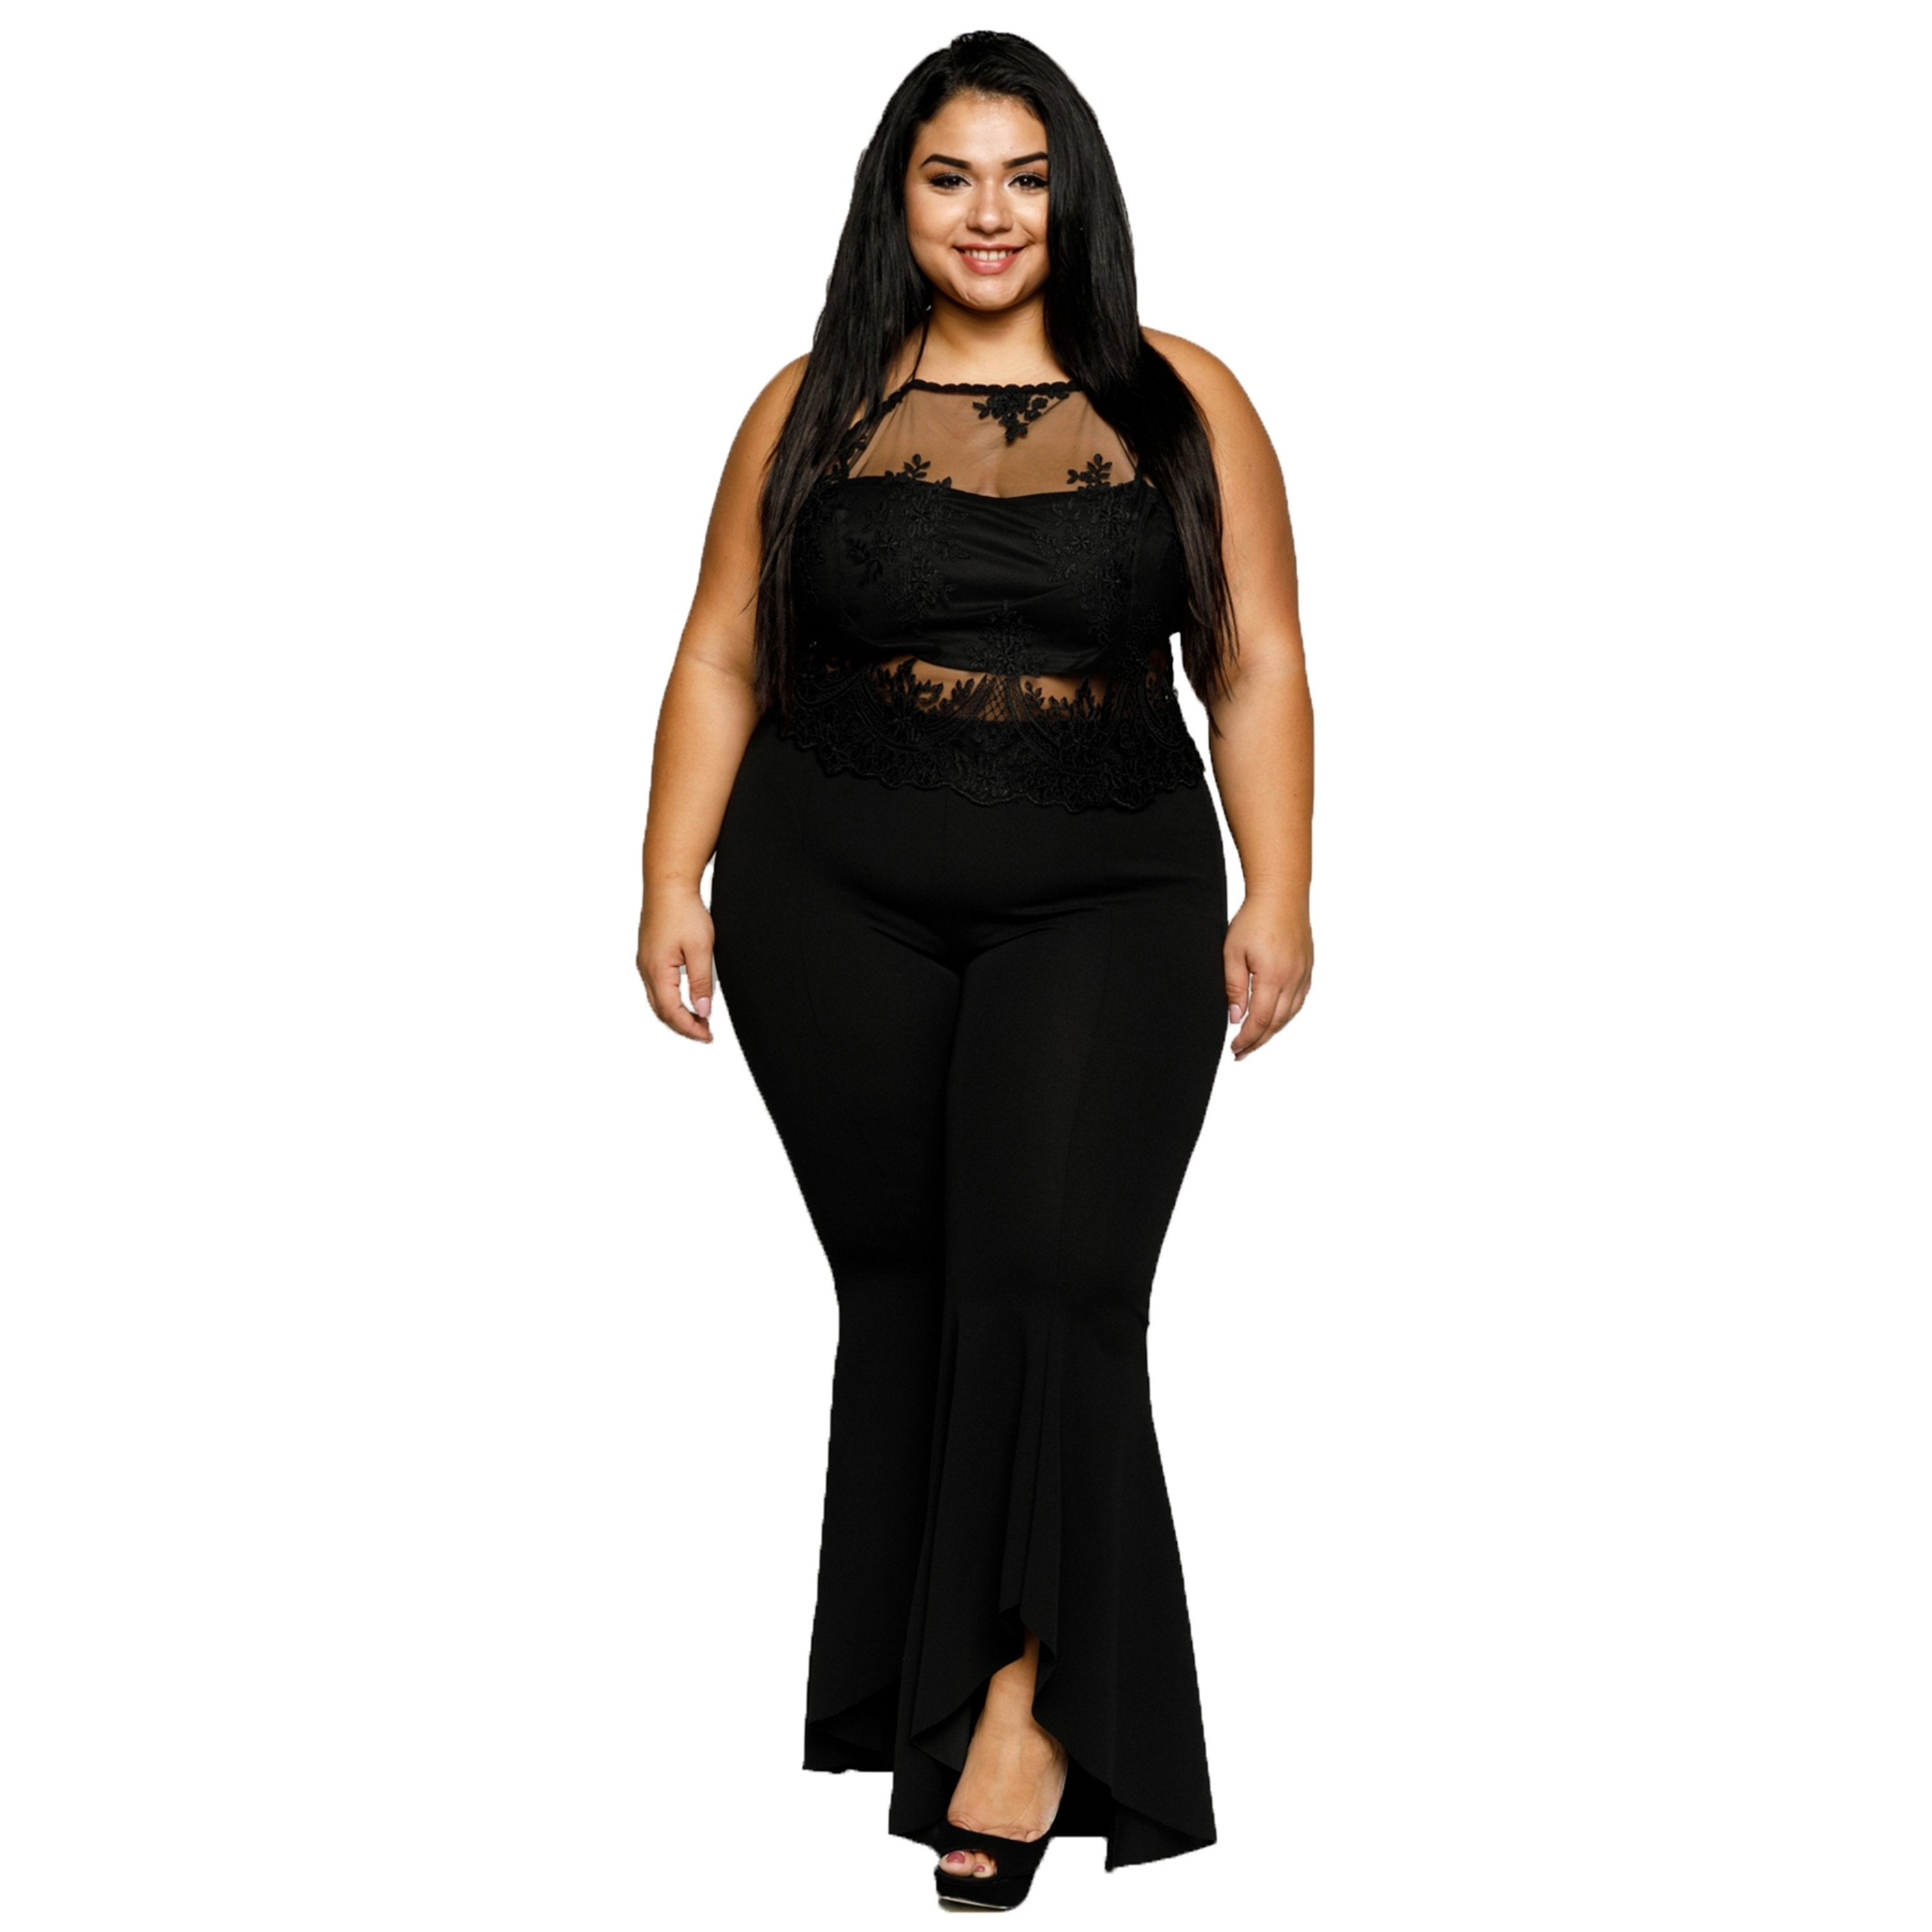 6d8a671ceca Shop Xehar Womens Plus Size Sexy Illusion Mesh Crochet Lace Halter Crop Top  - Free Shipping On Orders Over  45 - Overstock - 18512496